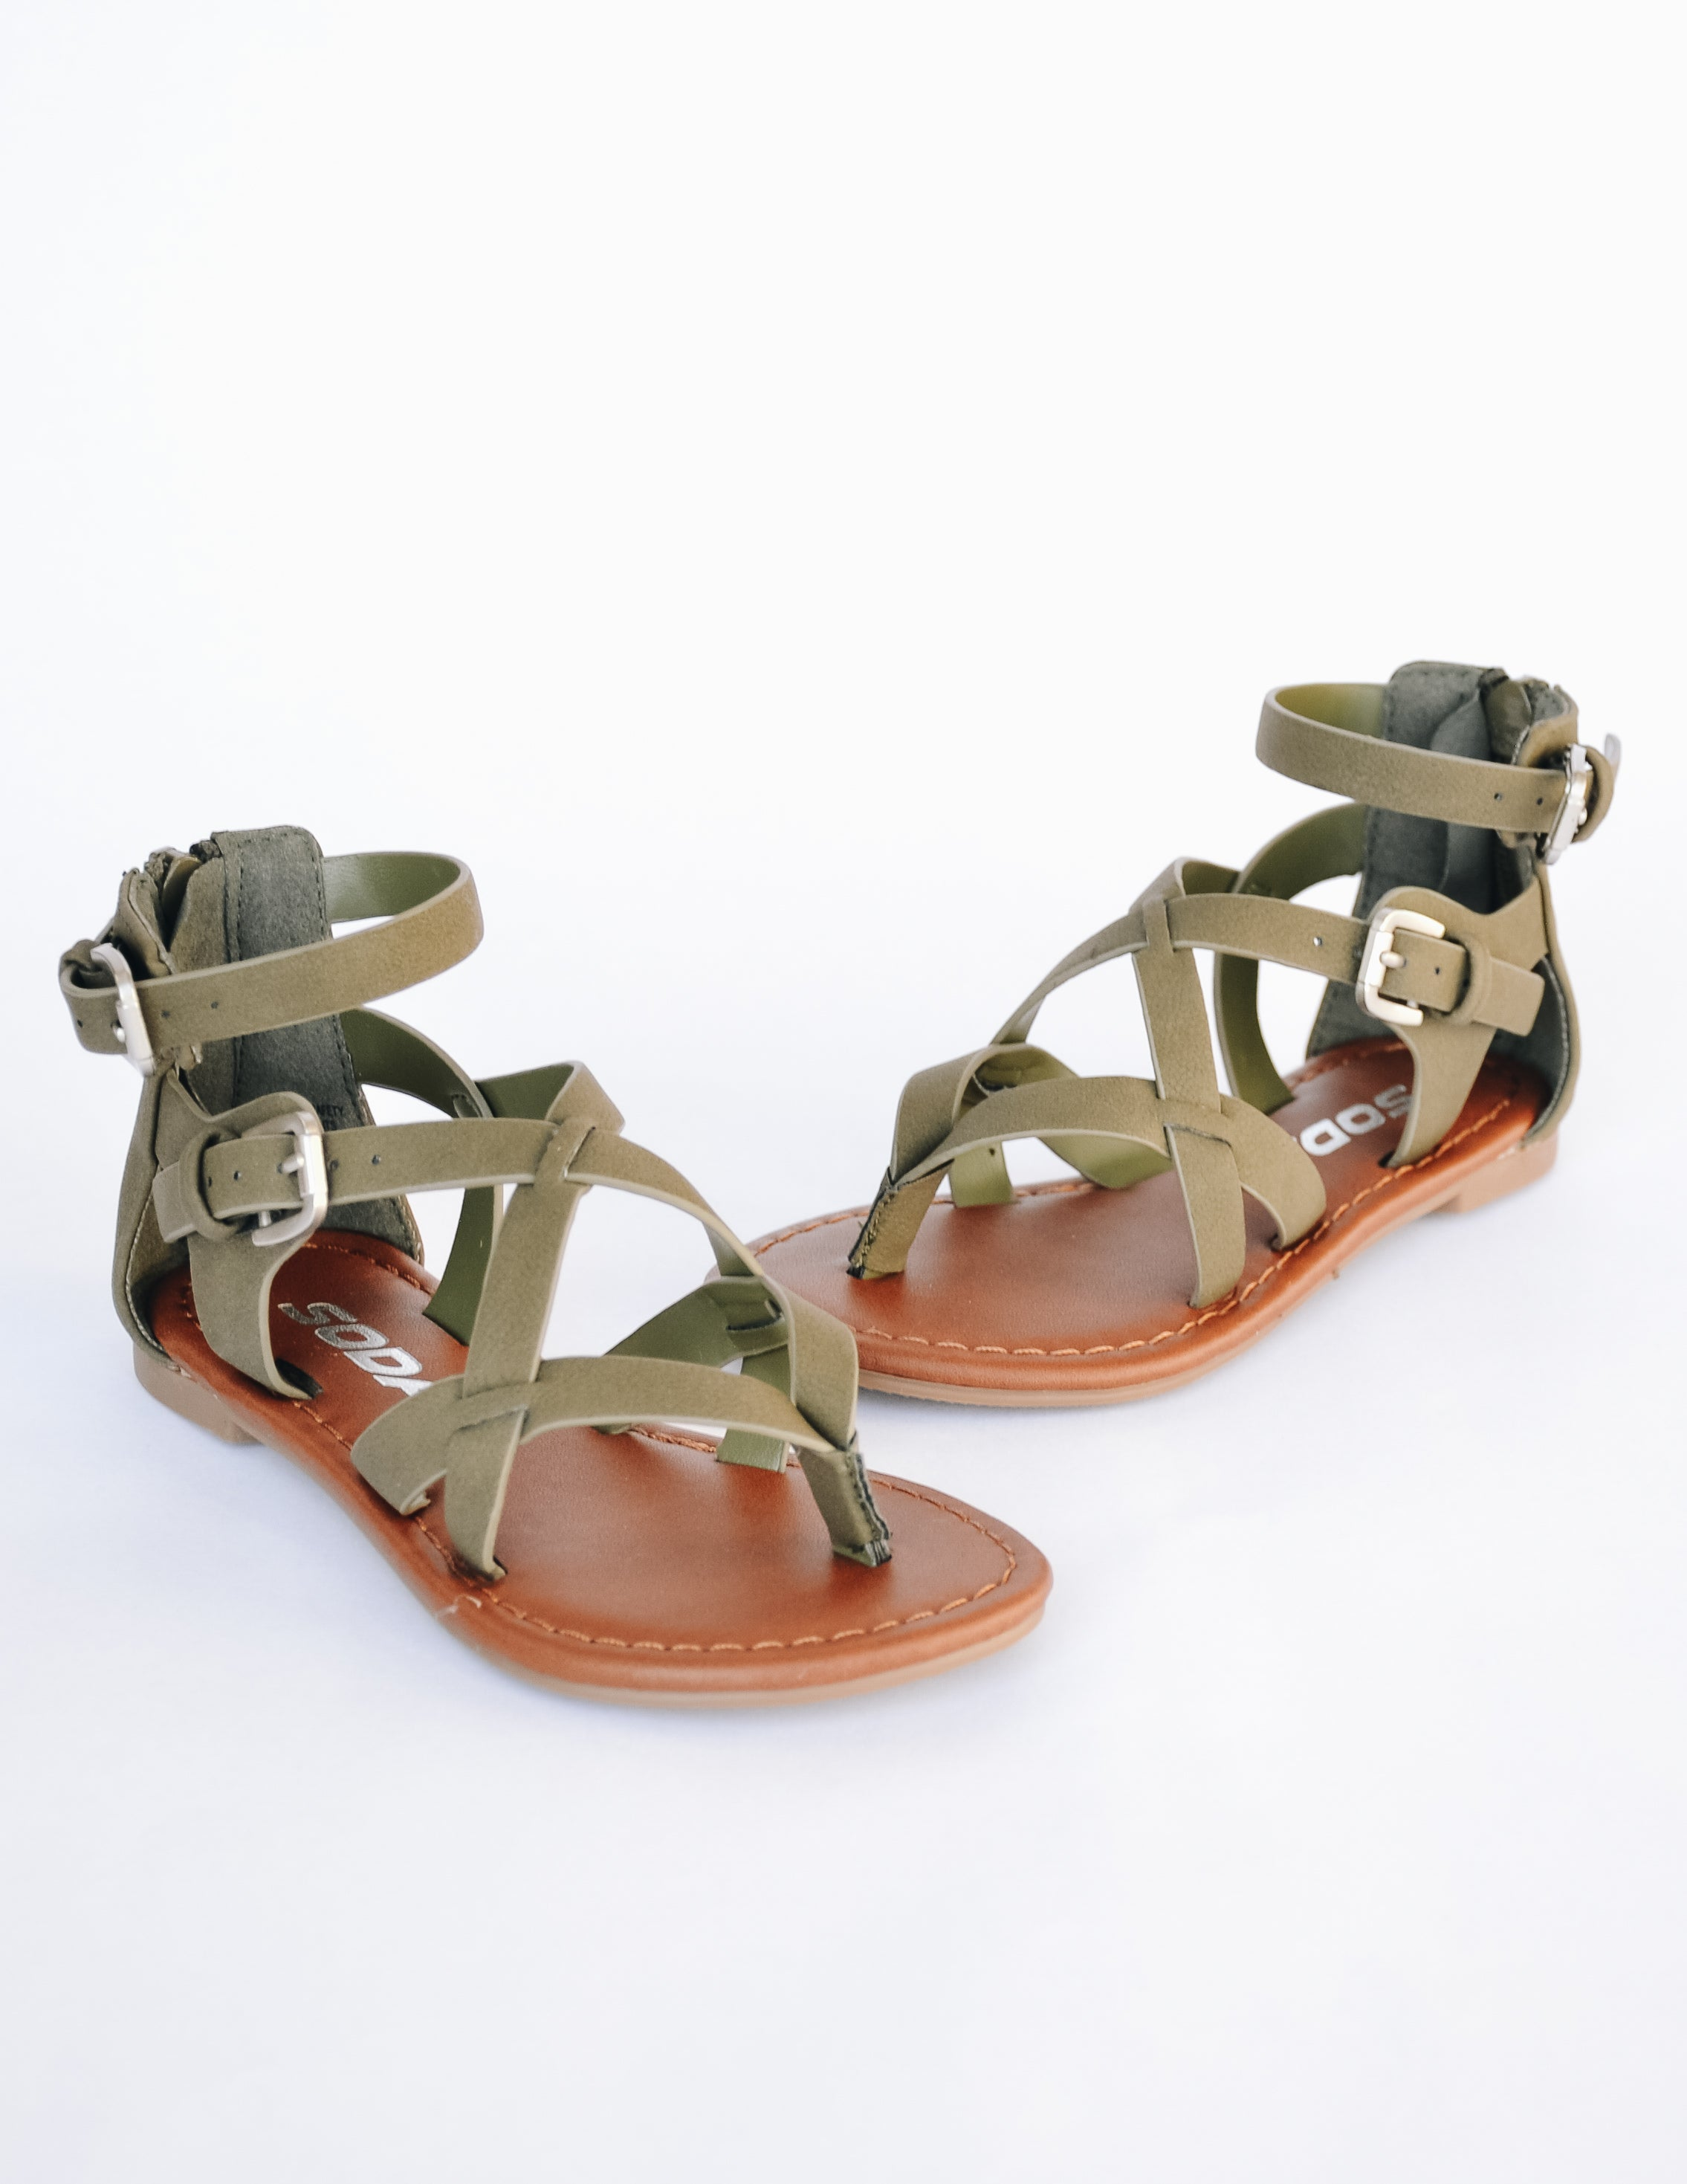 Kid girl sandal facing forward on white background showing straps